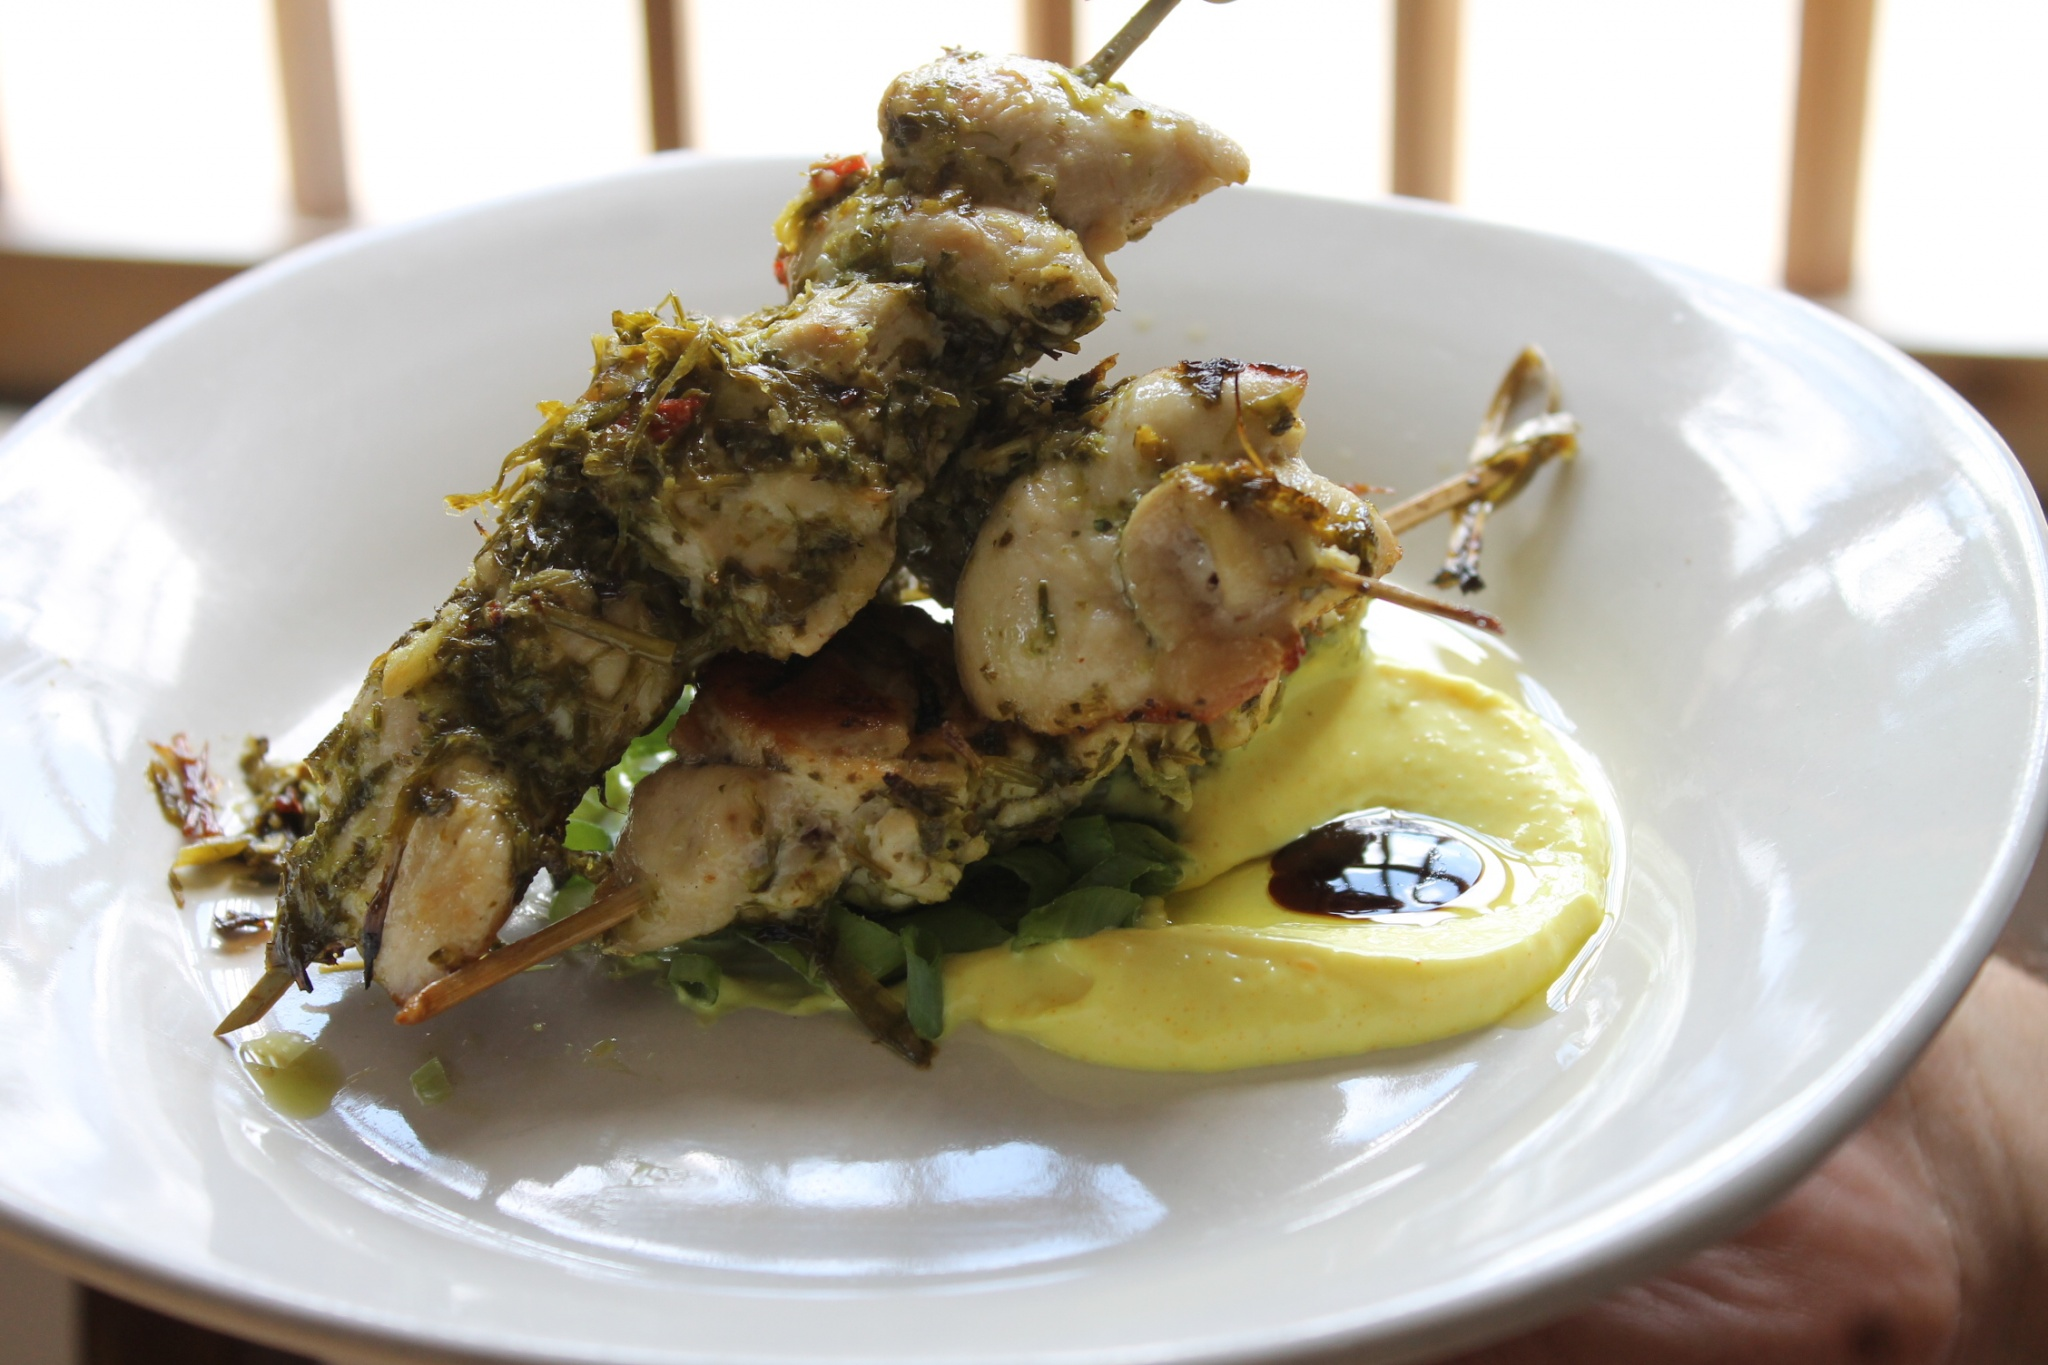 Grilled Chicken Skewers with Olive Oil, Garlic, Parsley and Chimichurri at Taverna del Caballo St Augustine